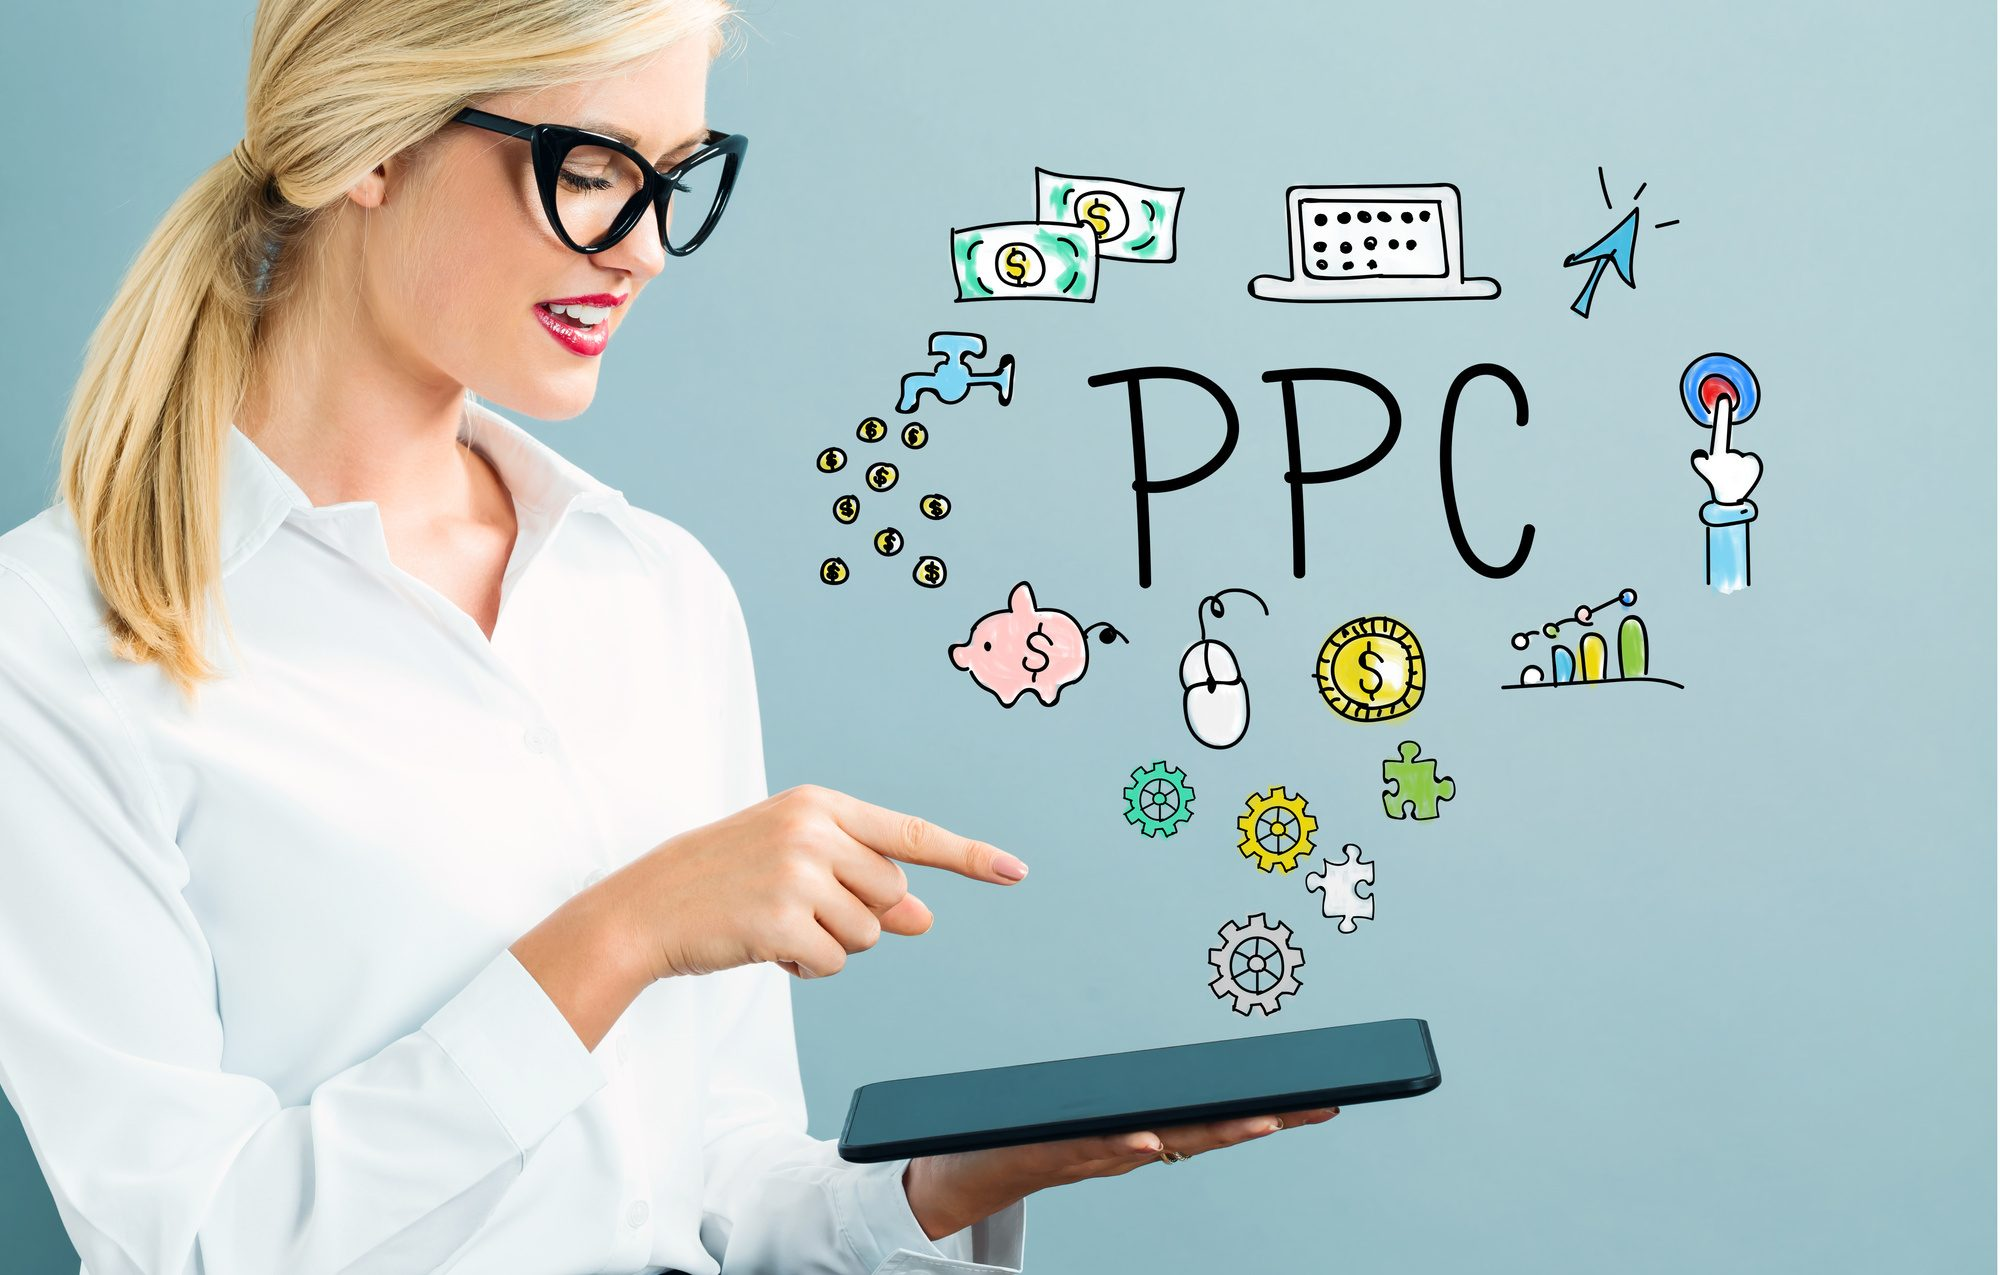 PPC, PPC agency Nottingham, PPc aggency